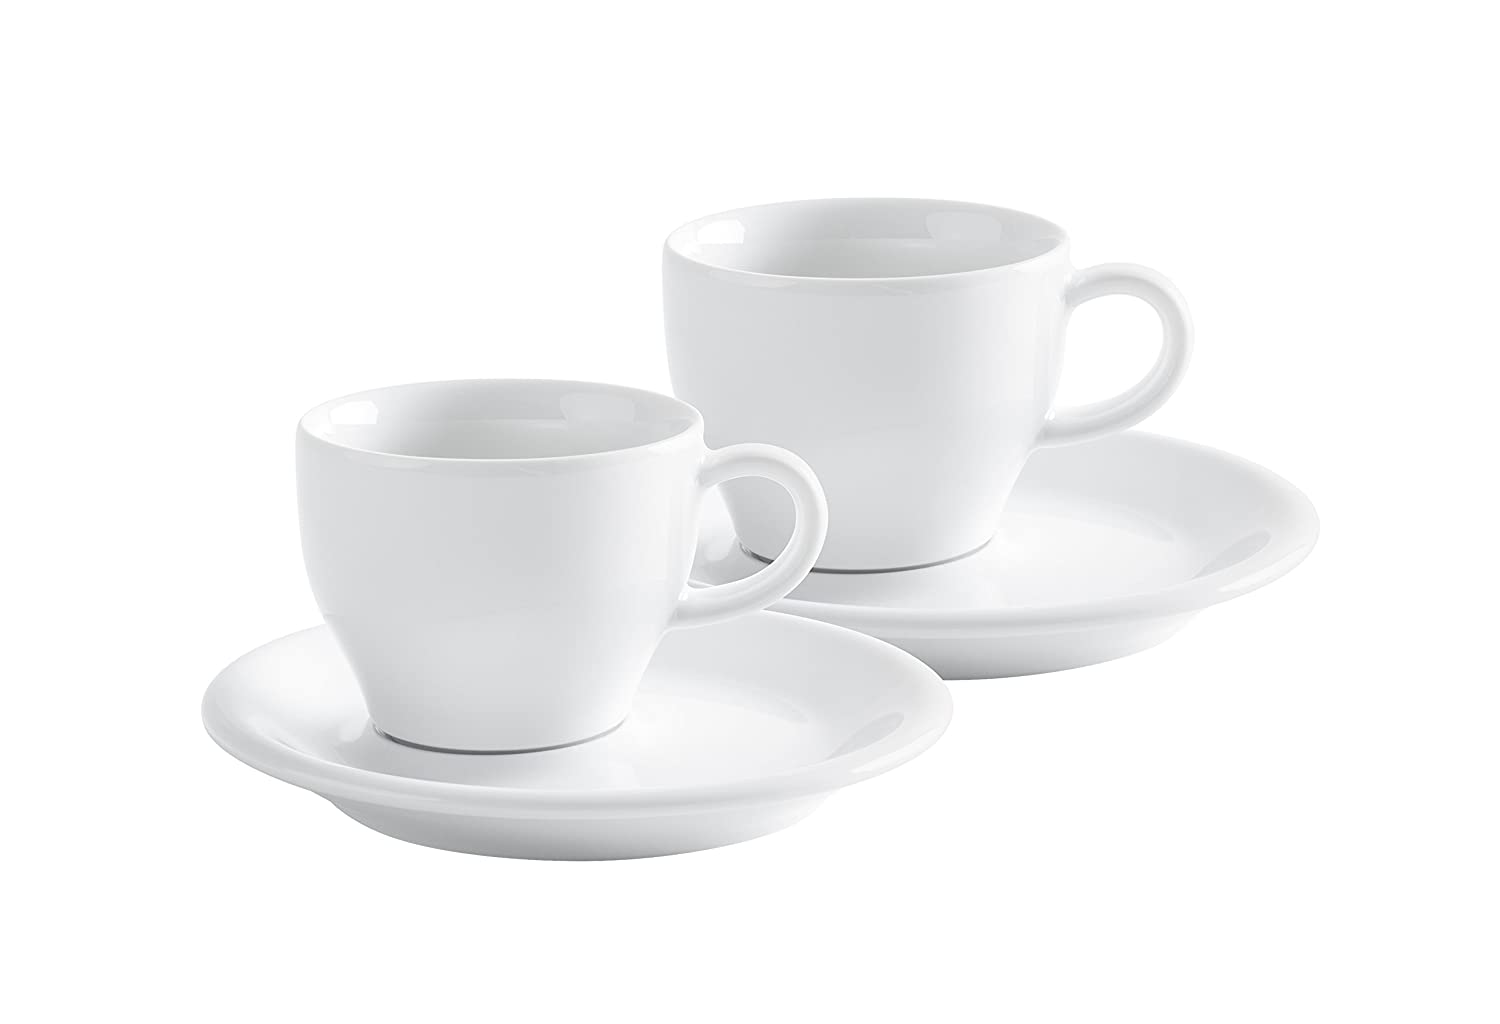 KAHLA Cafe Sommelier Cappuccino Italiano, White Color, Set of 4 Pieces Set of 4 Pieces 21D249A90021C